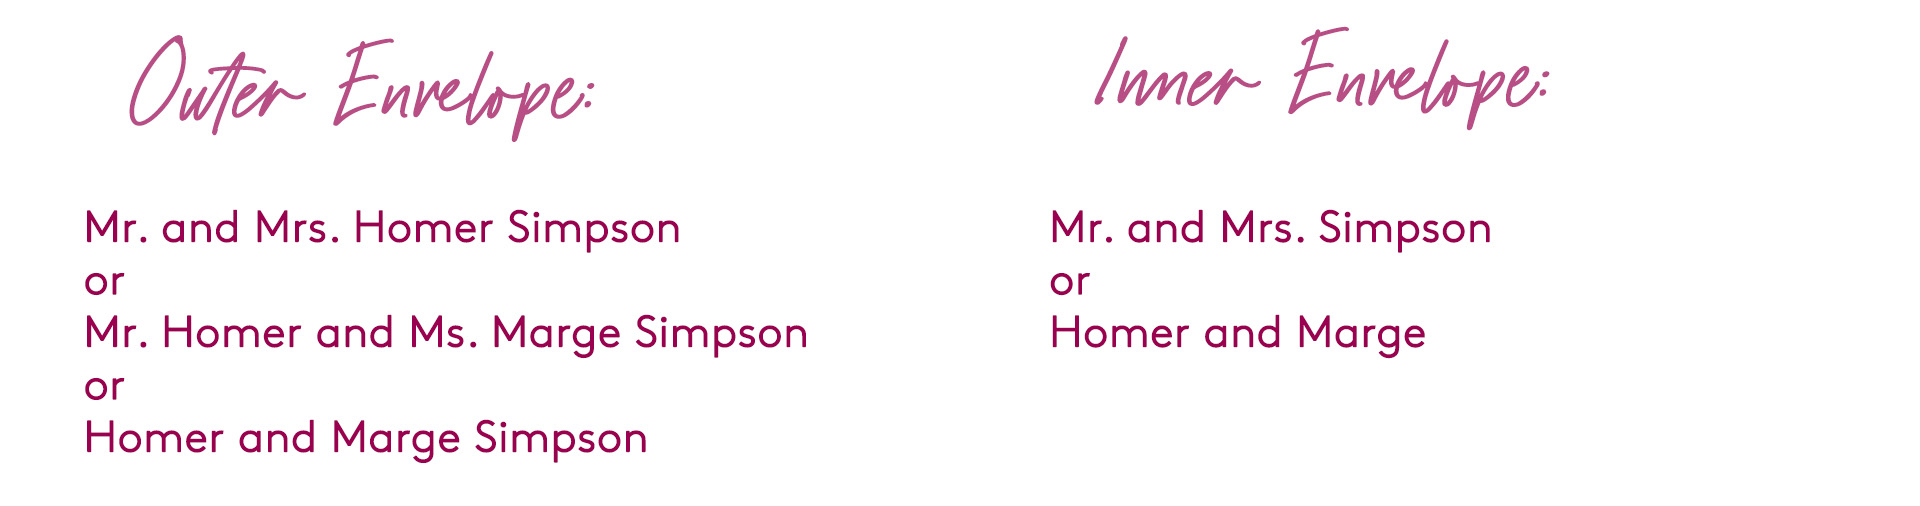 how to address wedding invitations to a married couple